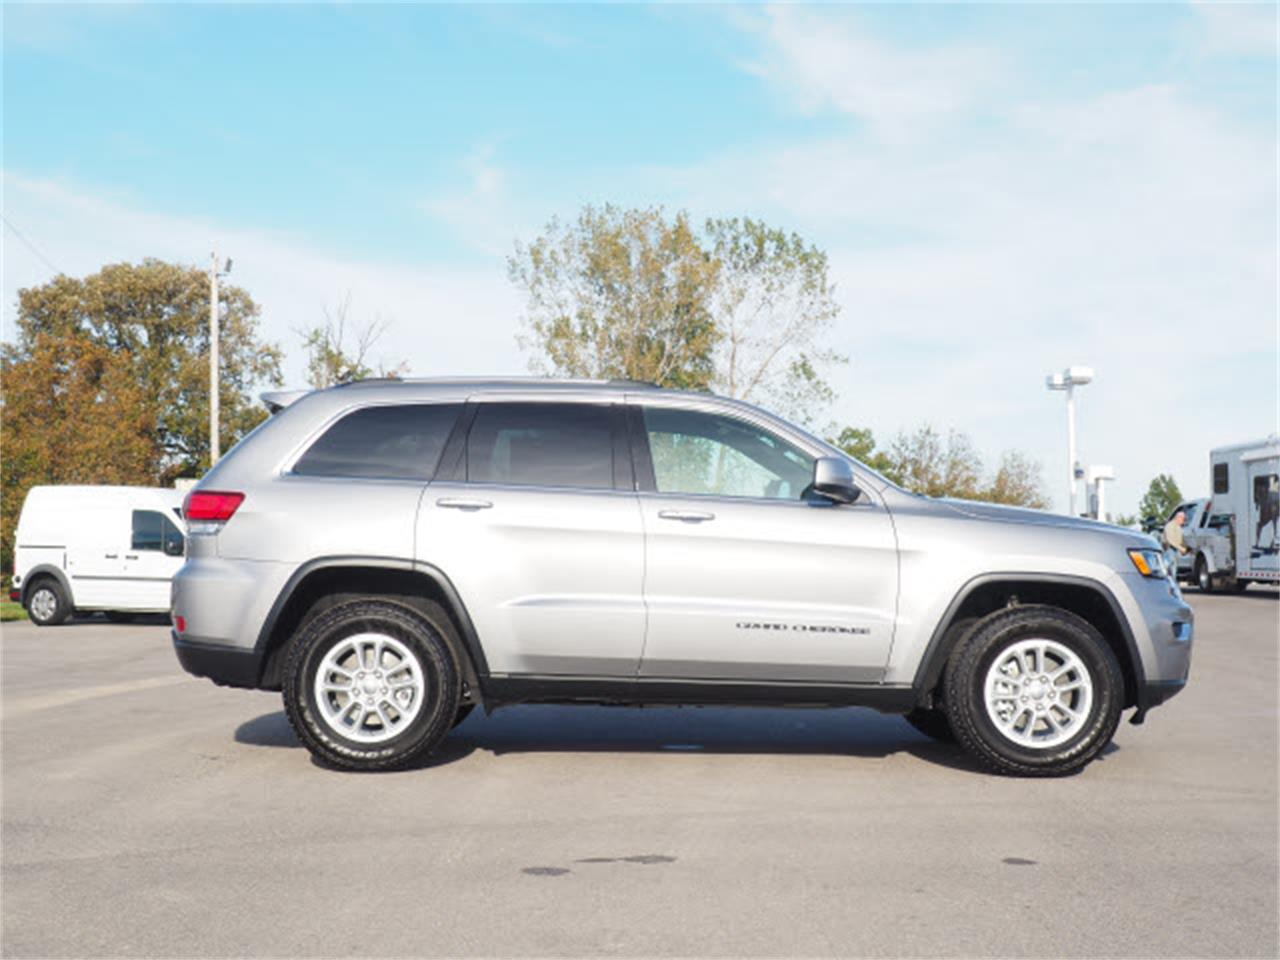 2020 Jeep Grand Cherokee (CC-1327536) for sale in Marysville, Ohio